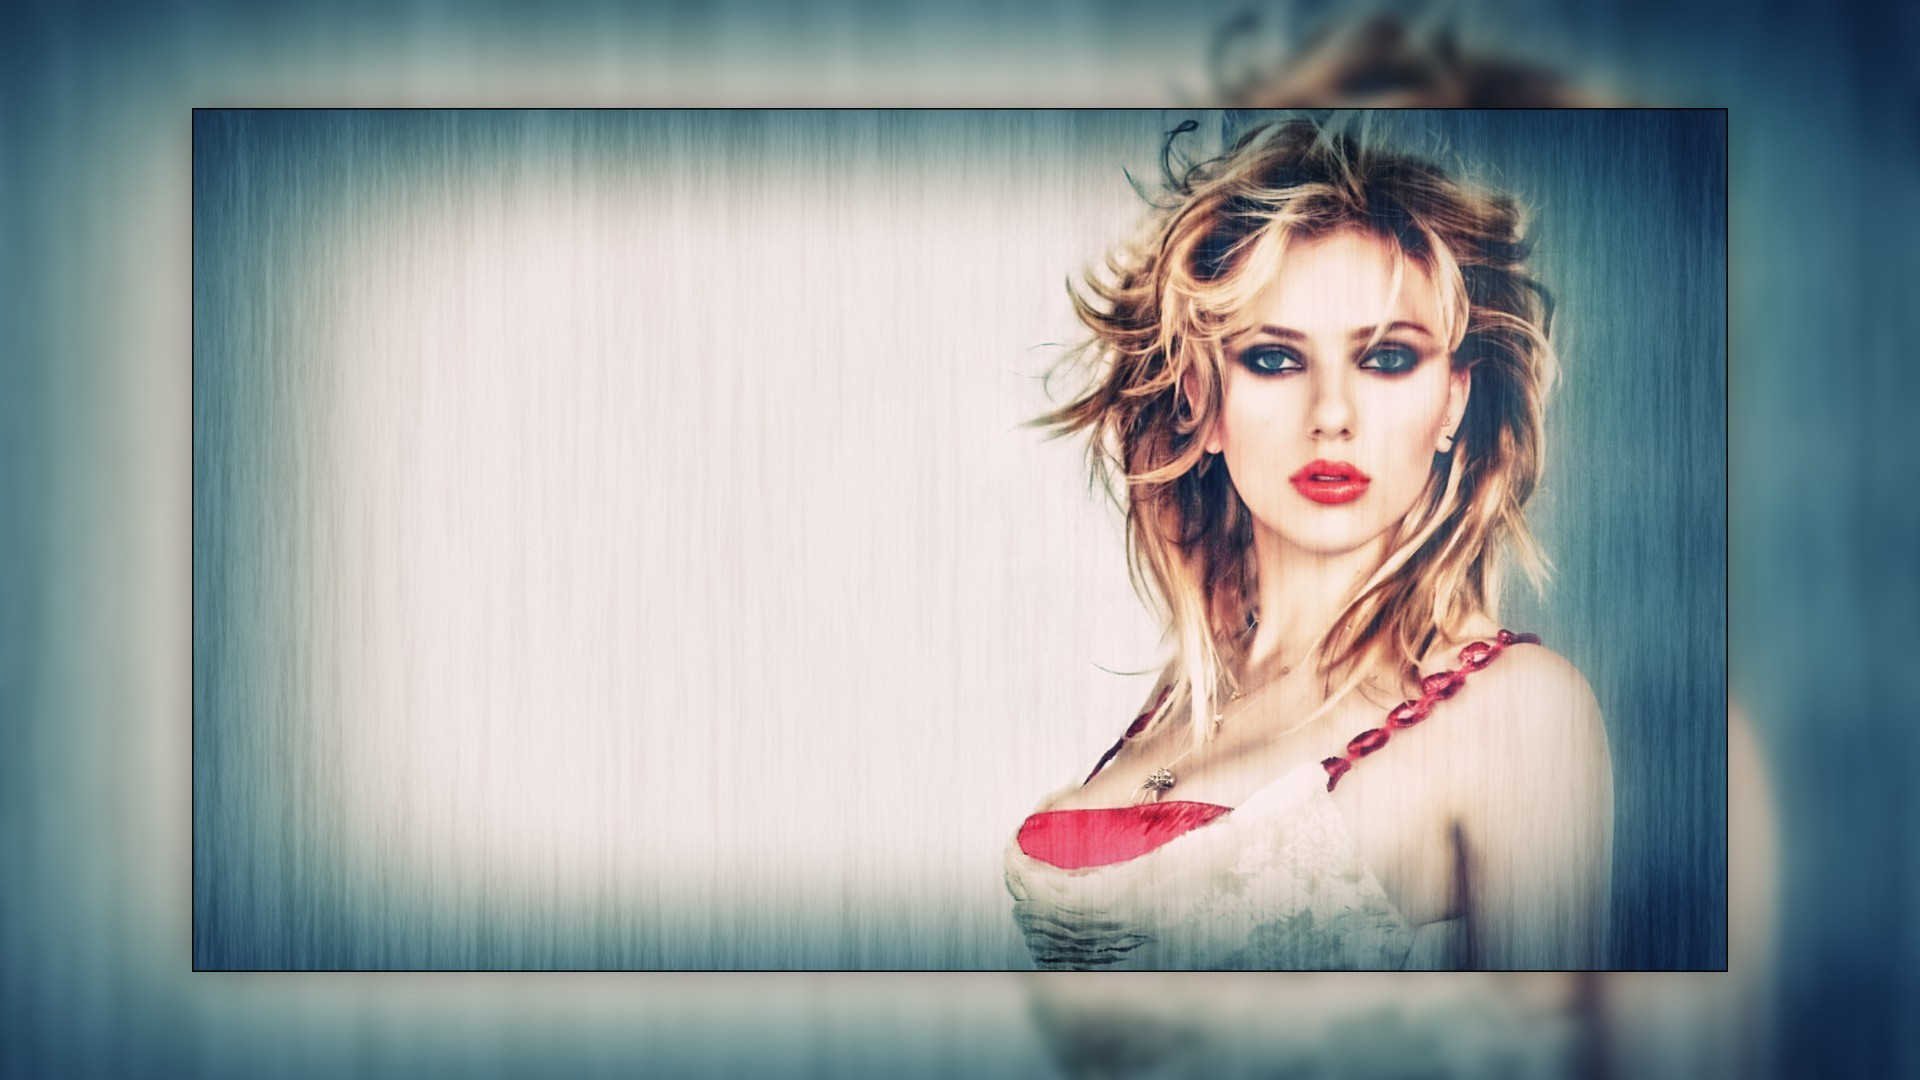 blondes woman Scarlett Johansson HD Wallpaper